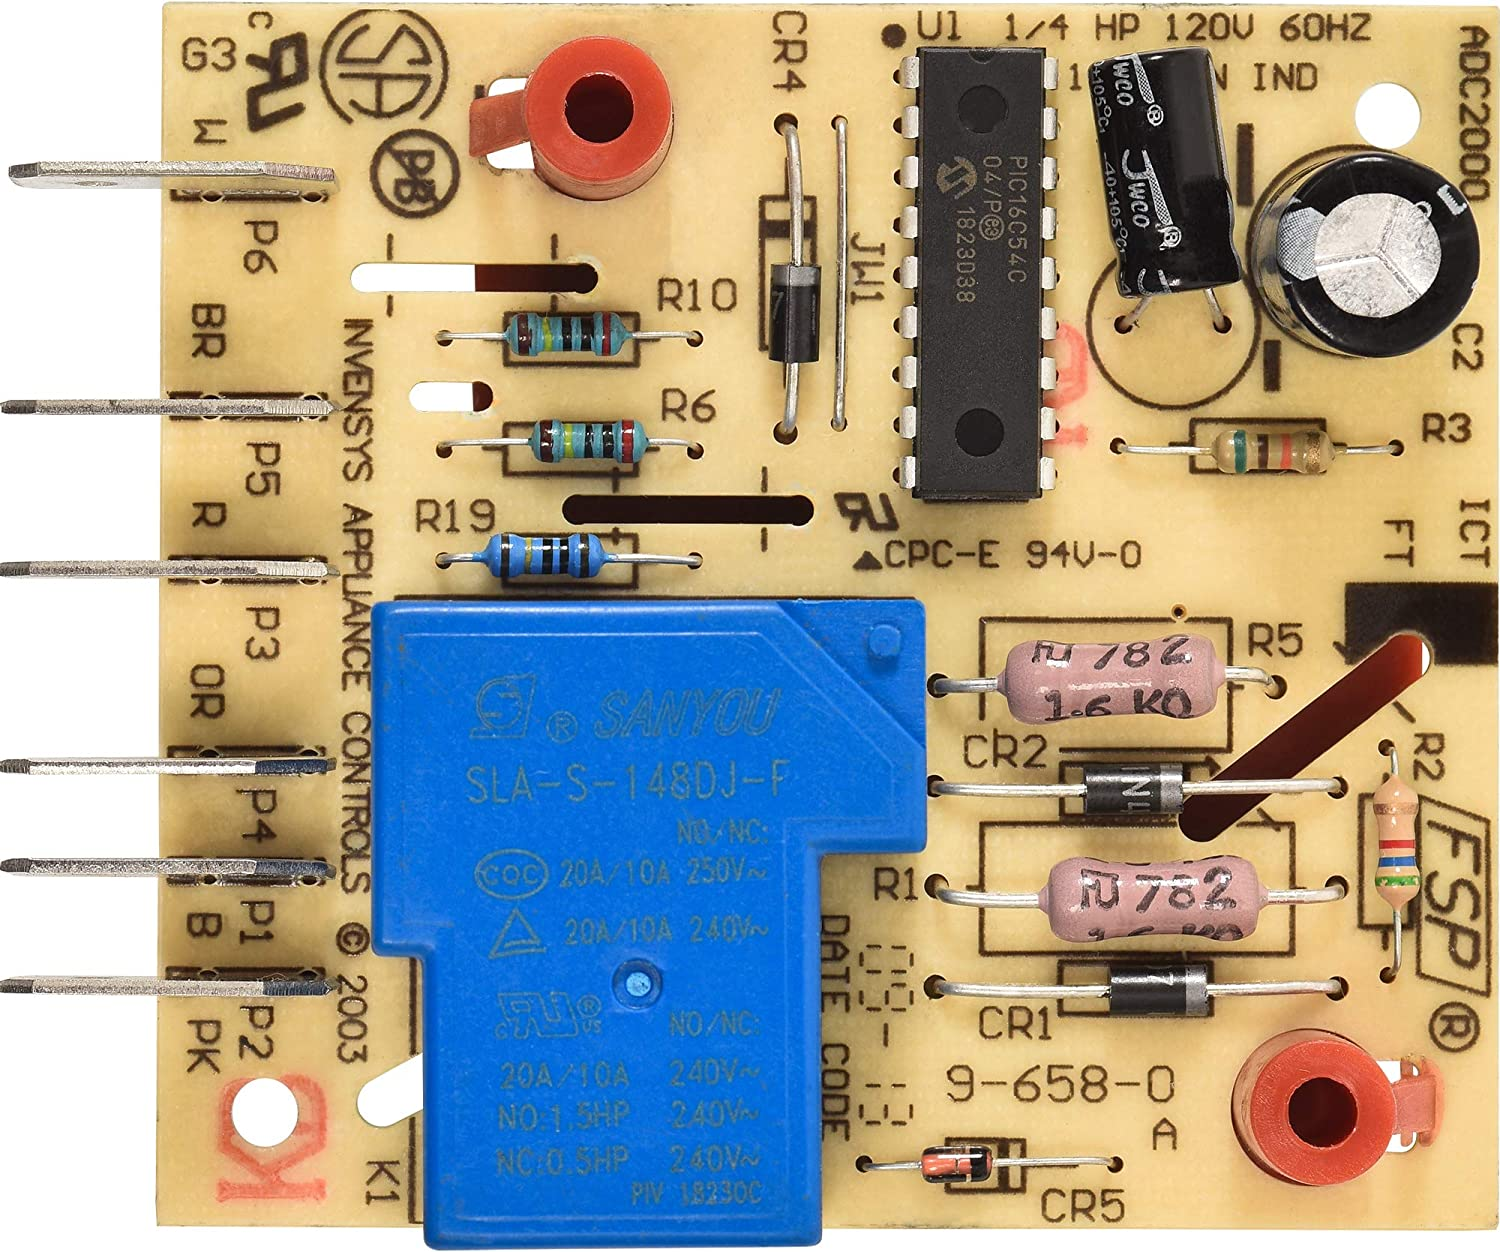 Ultra Durable W10352689 Refrigerator Main Control Board Replacement Part by Blue Stars - Exact Fit For Whirlpool & Kenmore Refrigerators - Replaces WPW10352689